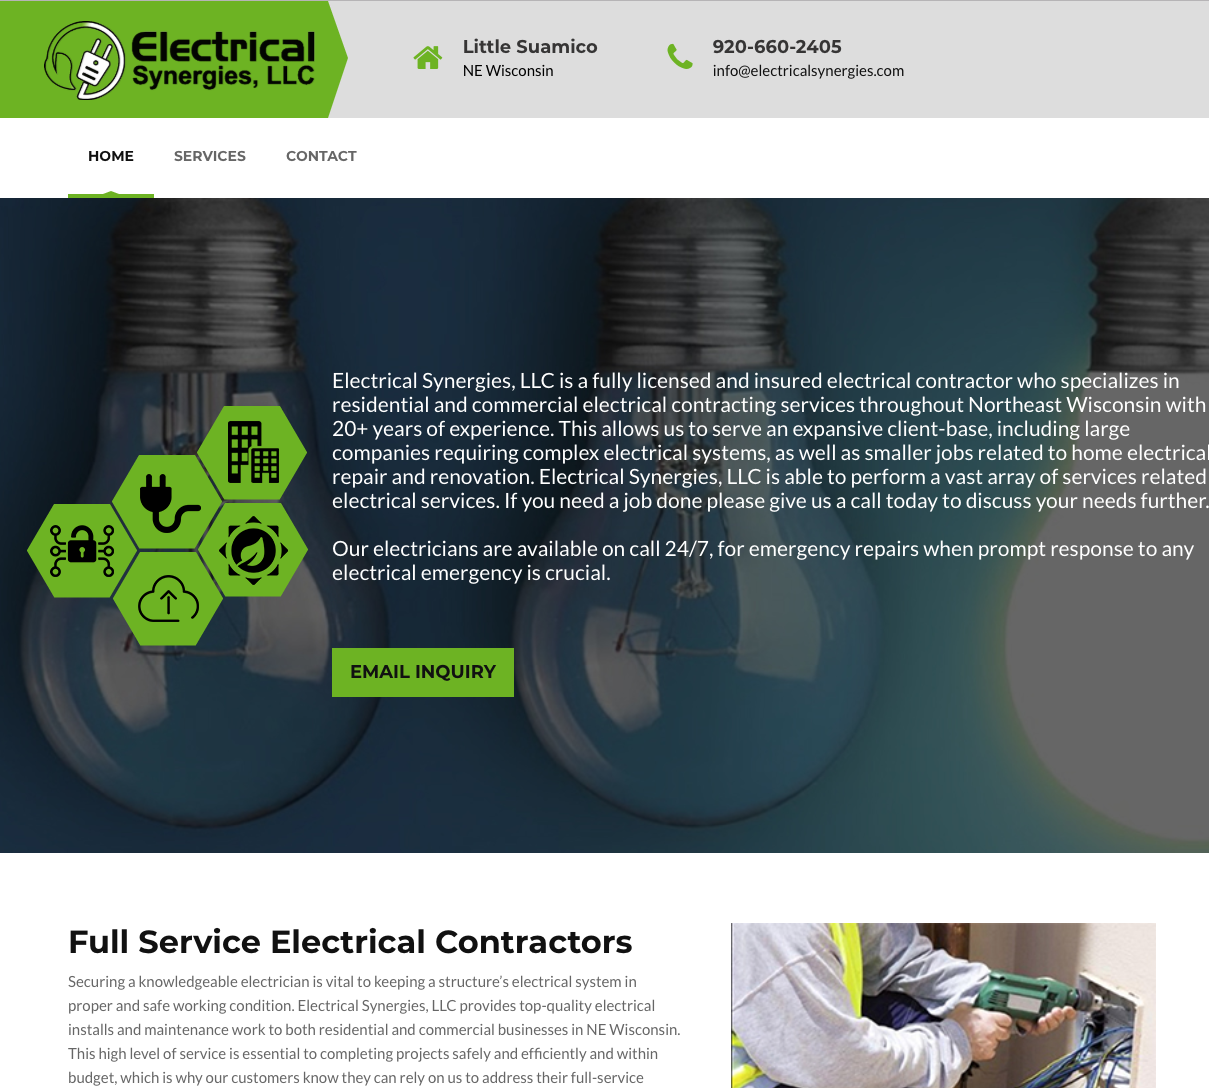 Electrical Synergies